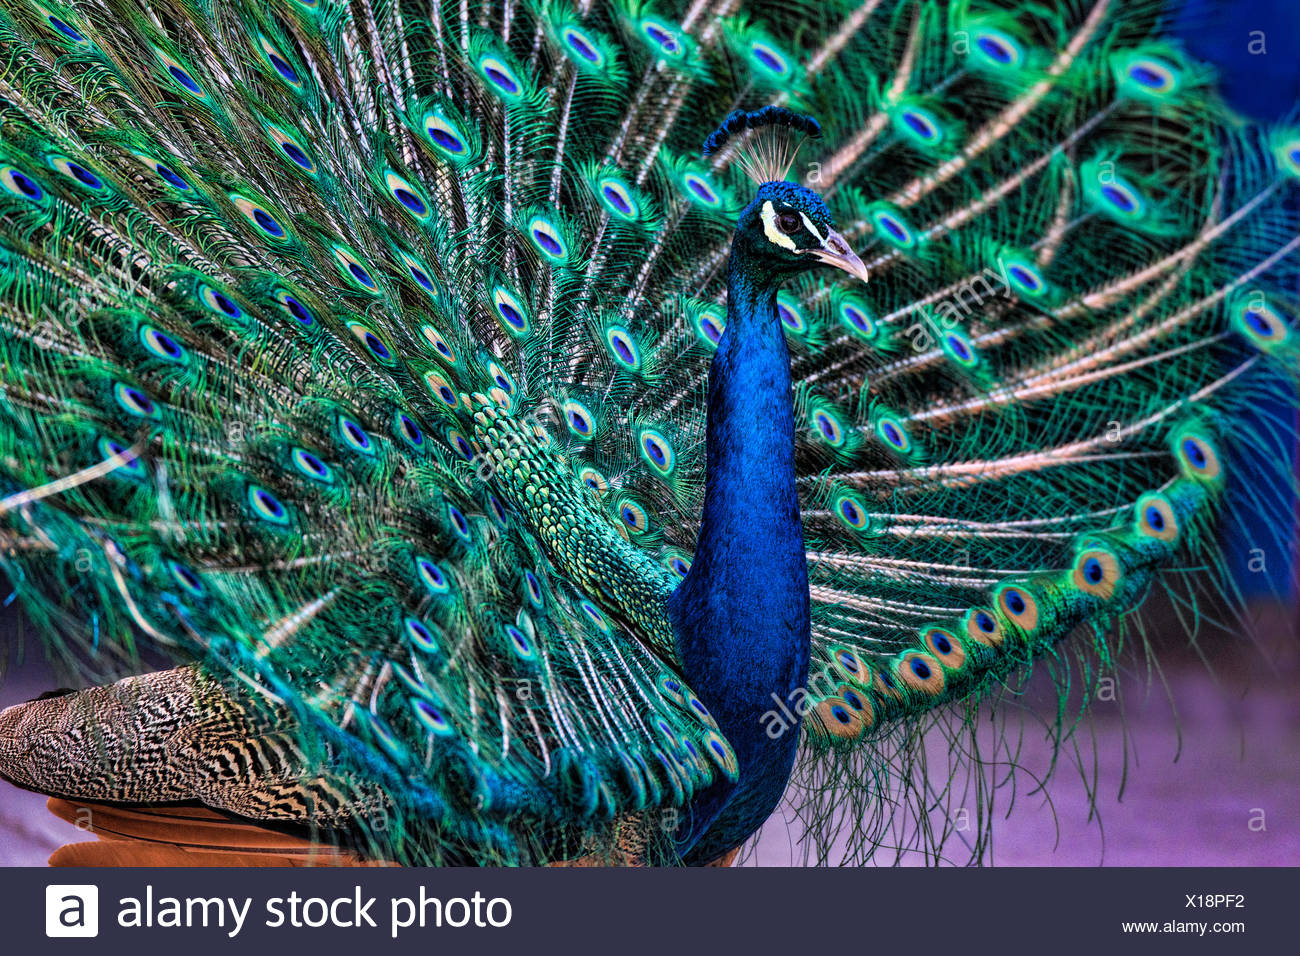 male, peacock, indian peafowl, pavo cristatus, bird - Stock Image